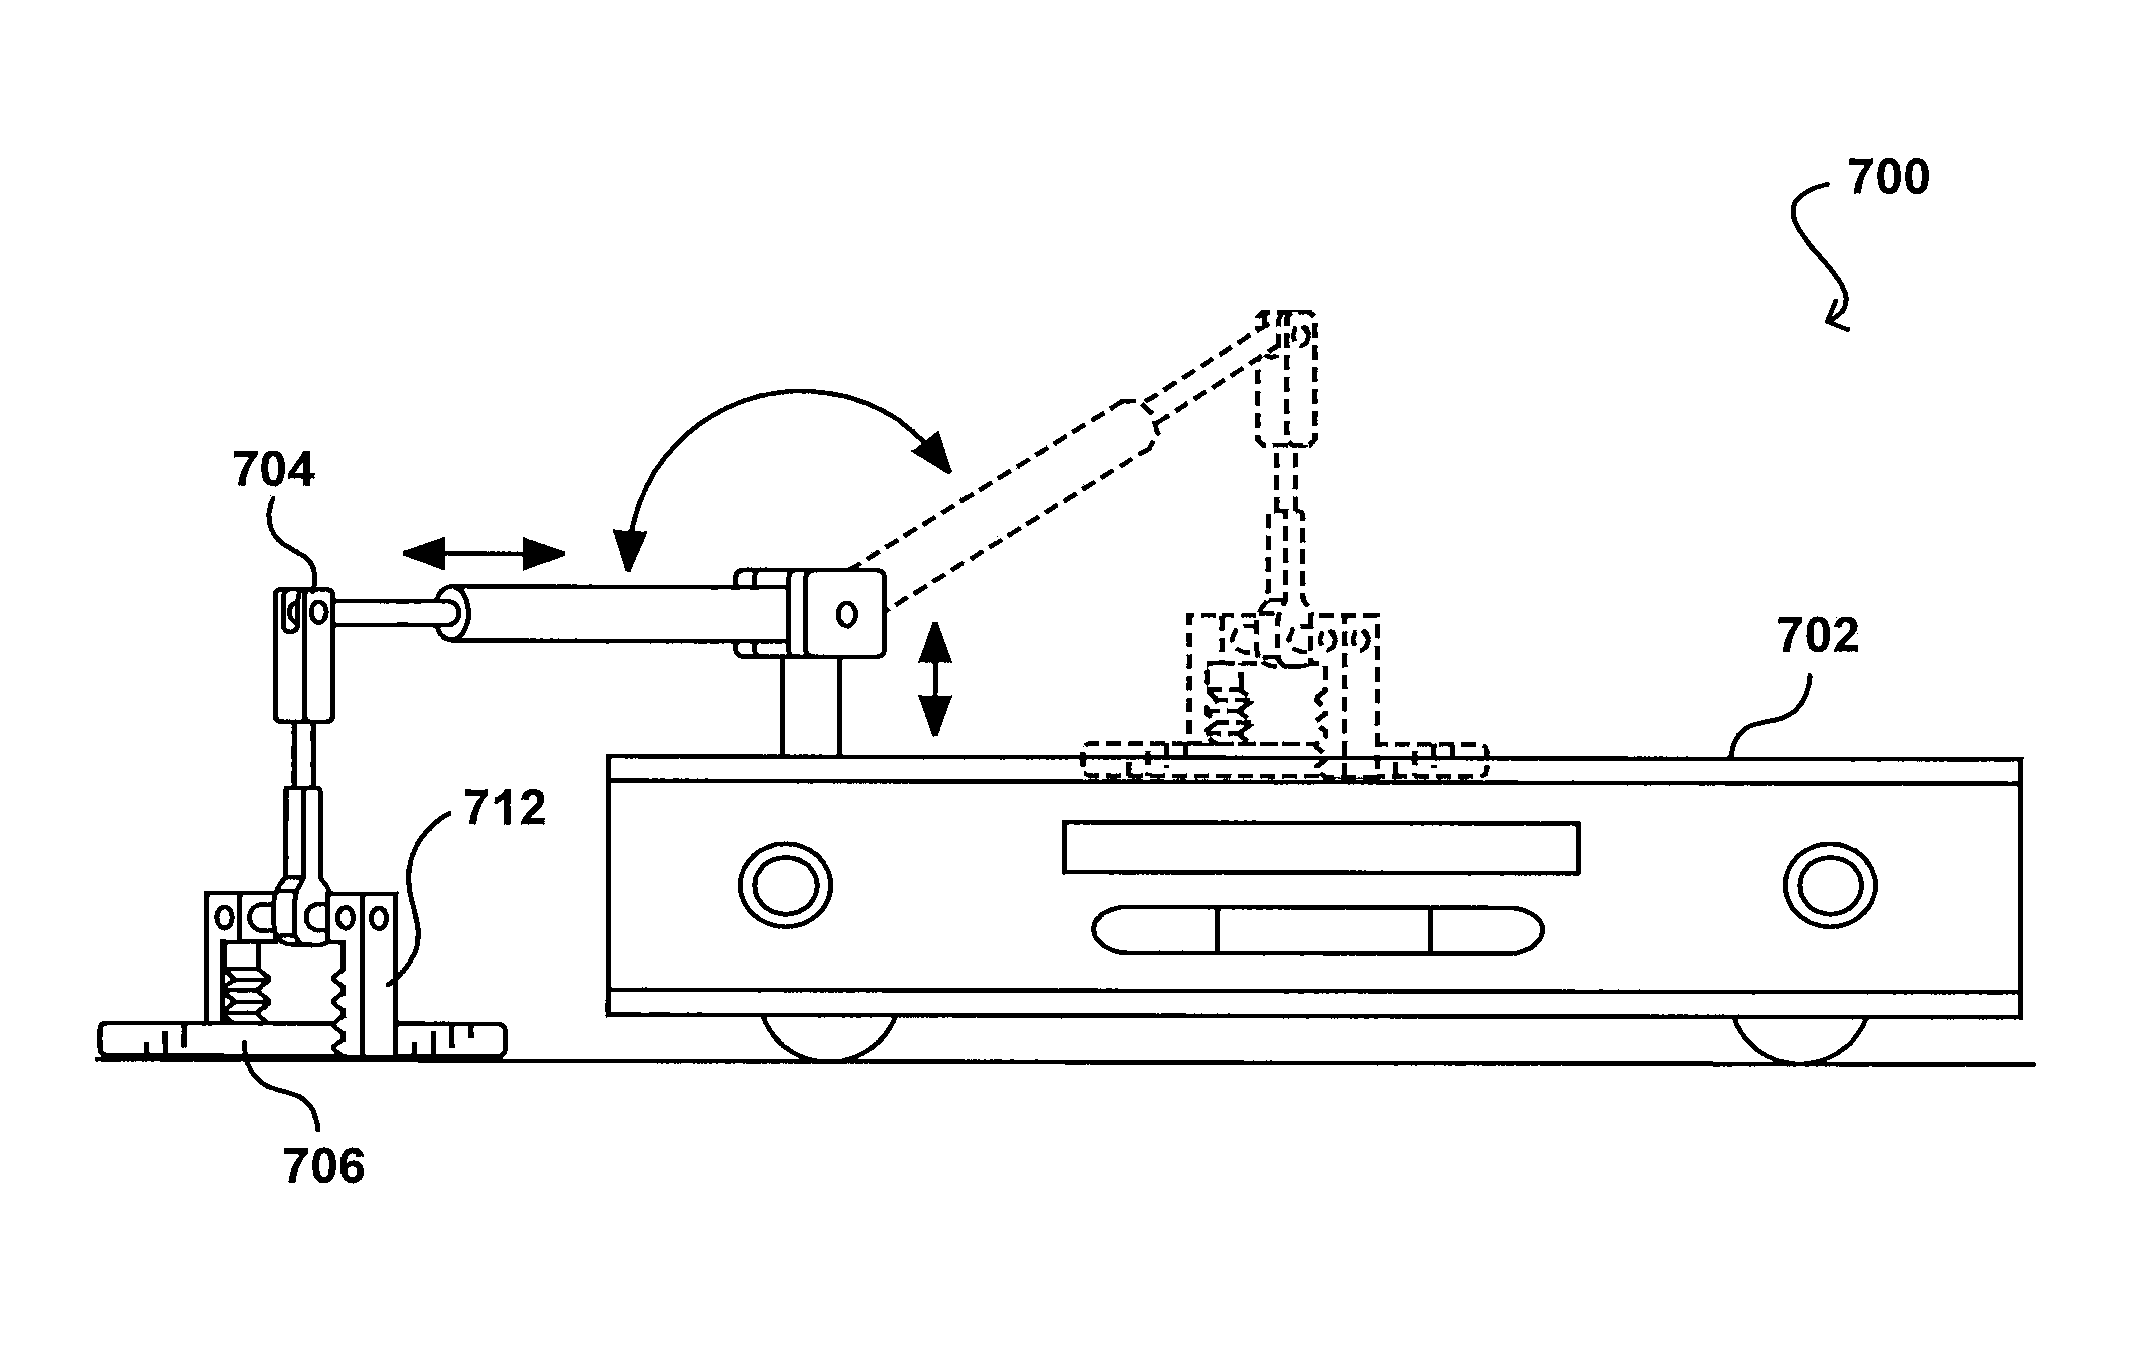 Amazon   patent by Jeff Bezos from 2014 for charging an electronic device including traversing at least a portion of a path with an apparatus - US8736228